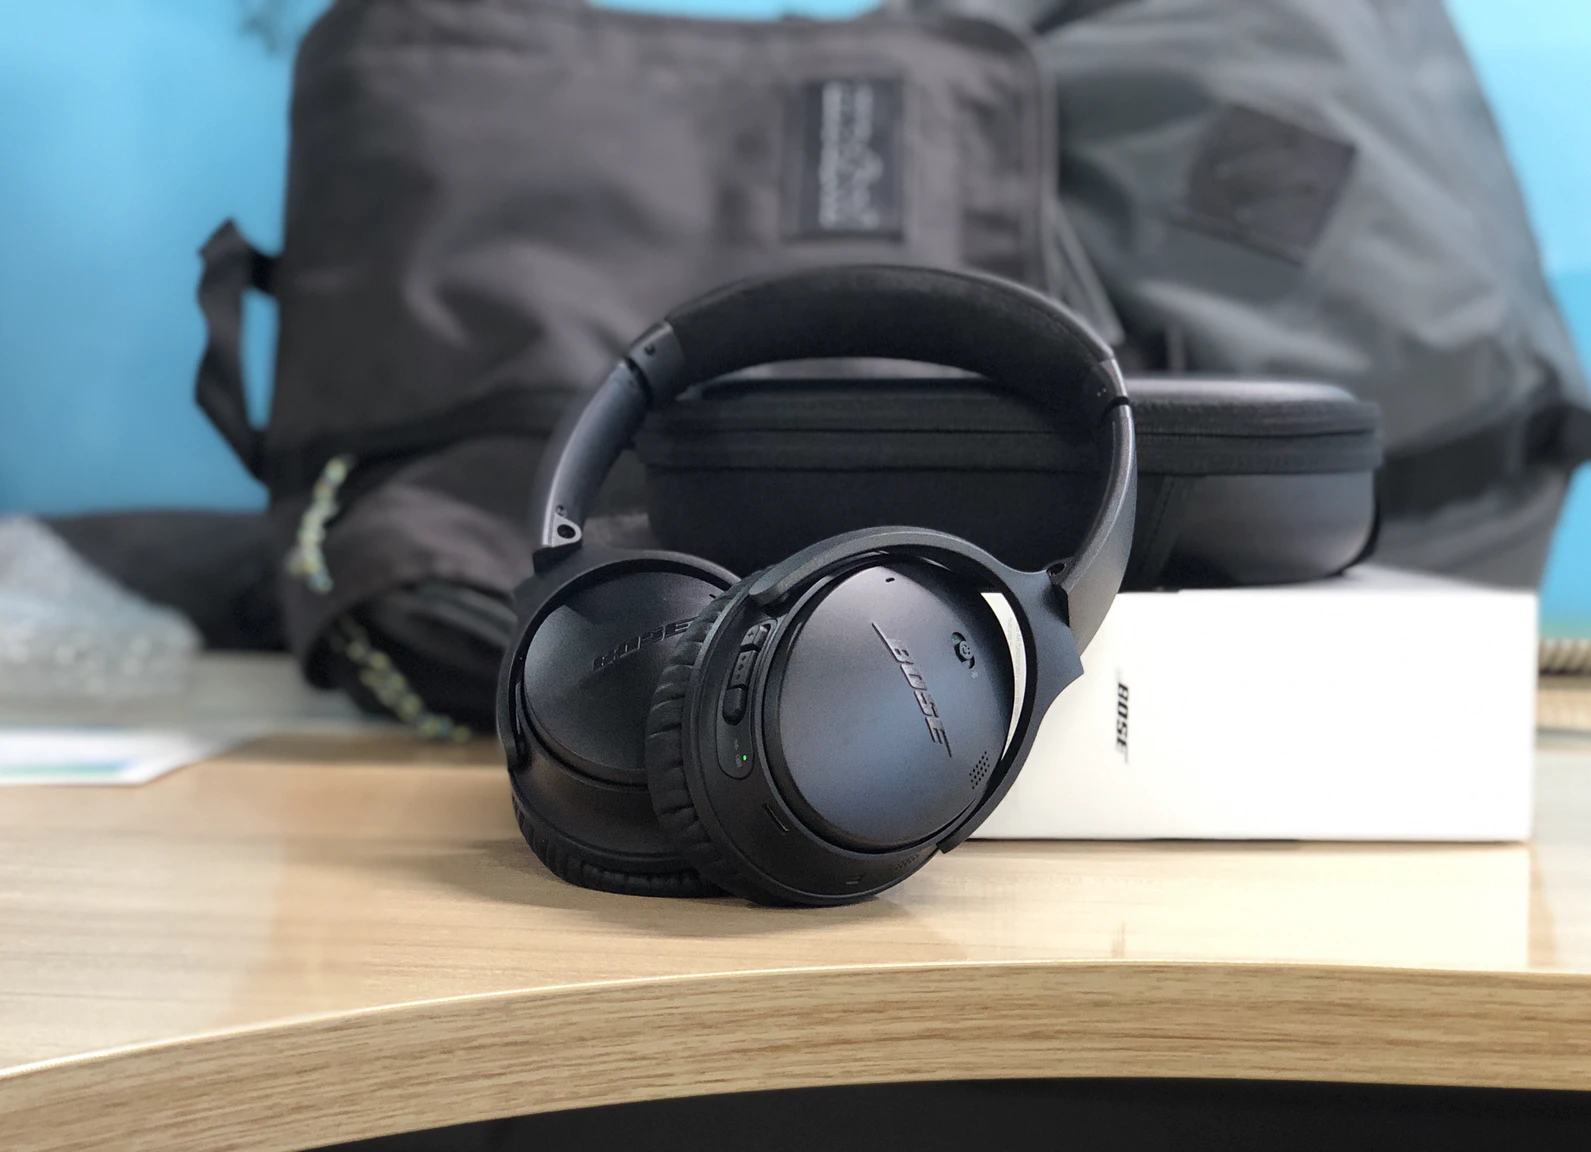 The Bose QC35 II are one of the most iconic noise cancelling headphones in Singapore that can help you as you work from home.